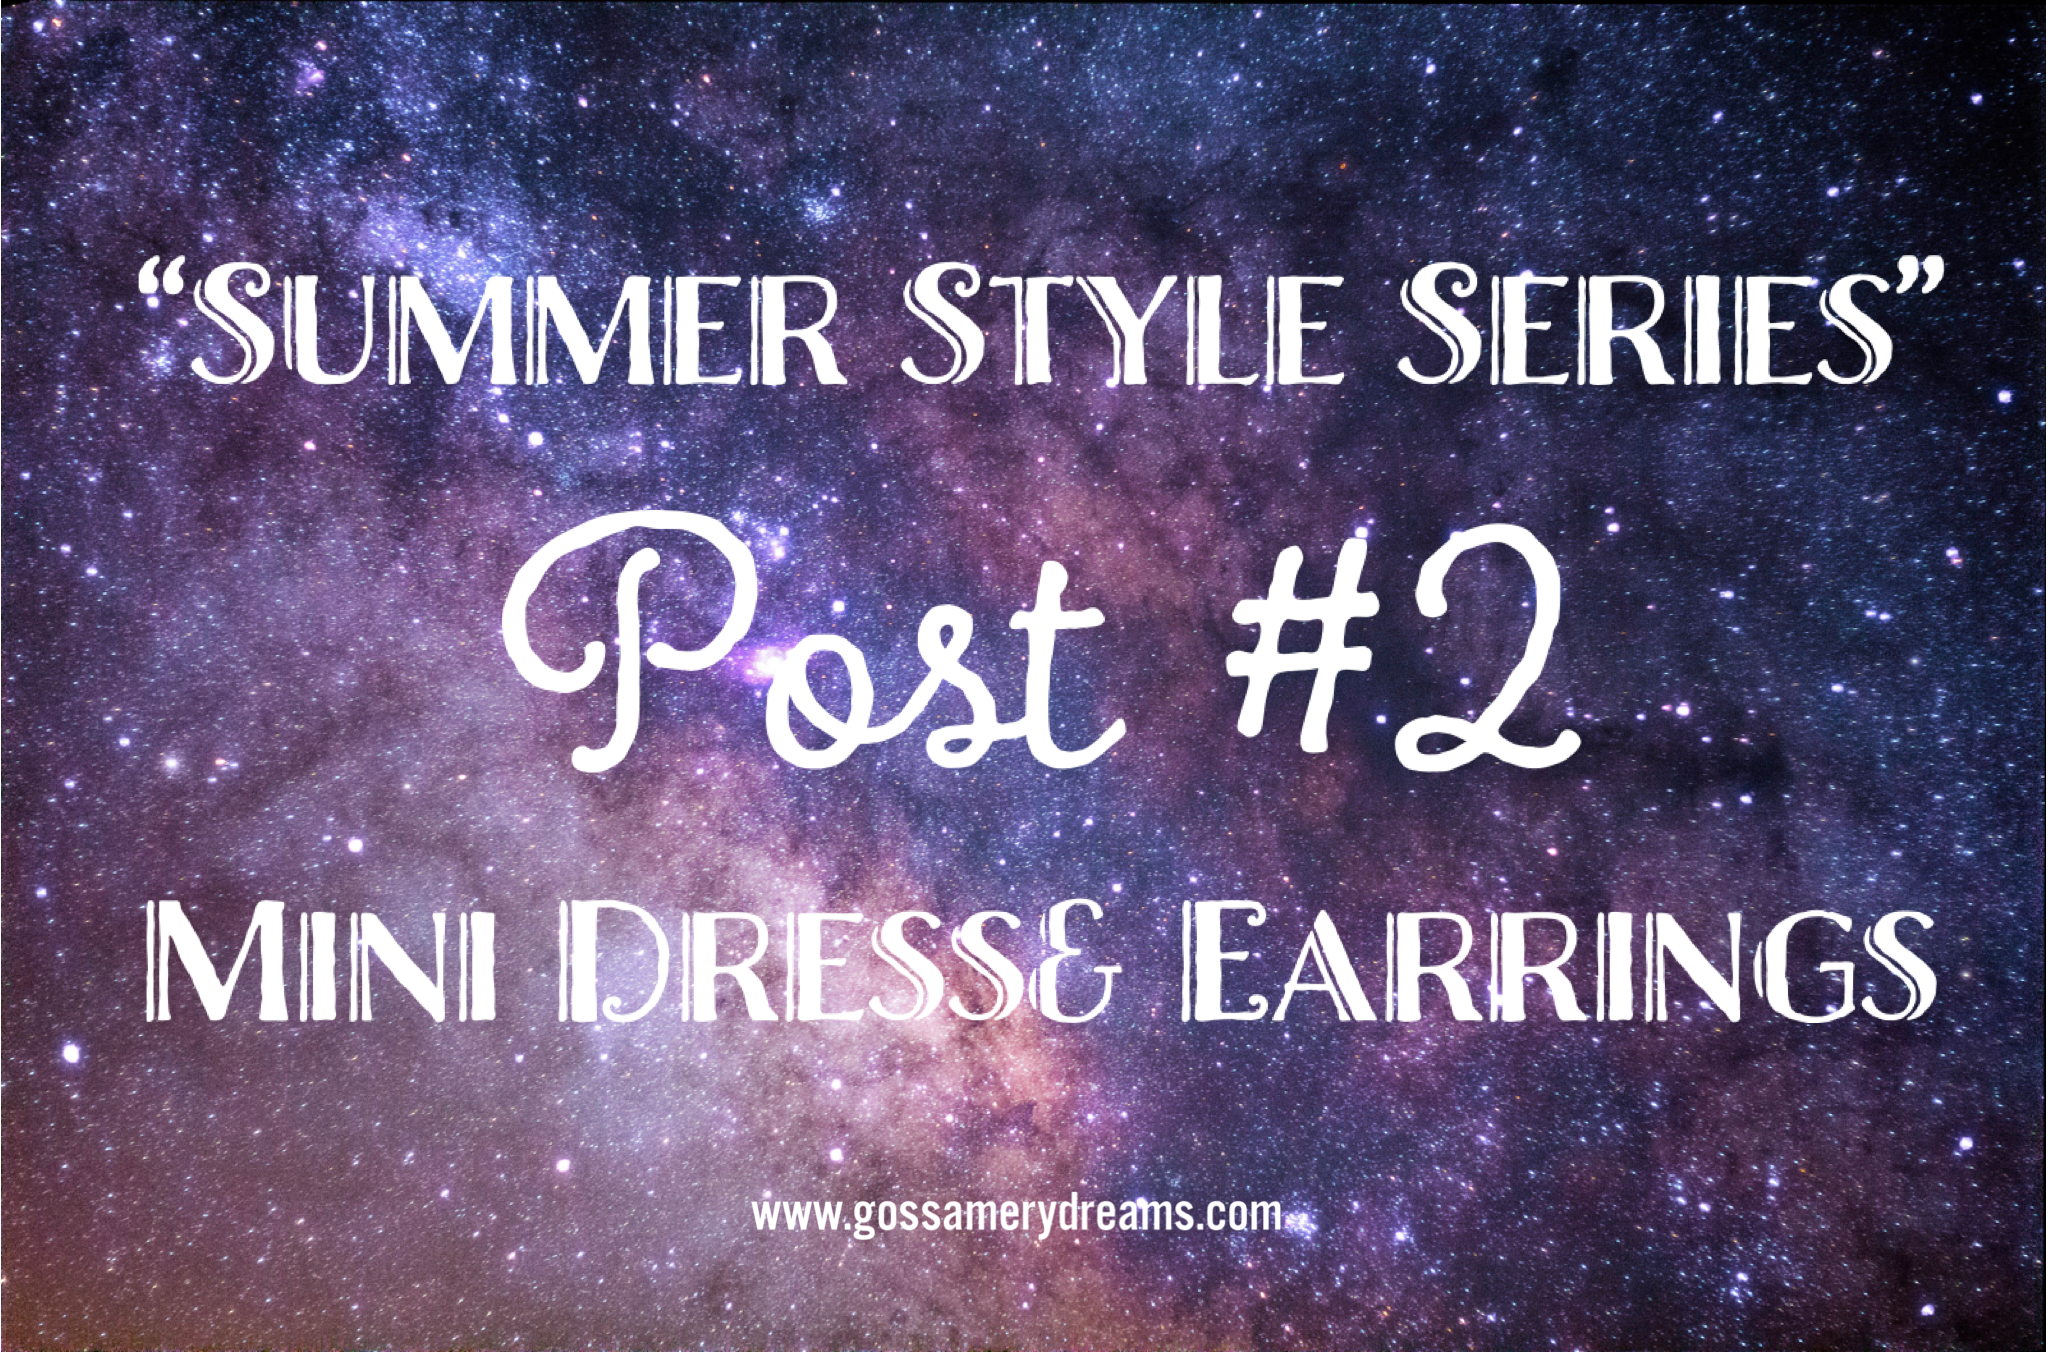 Summer Style Series Post #2-Mini Dress and Earrings! Come and check out this perfect summer style at gossamerydreams.com